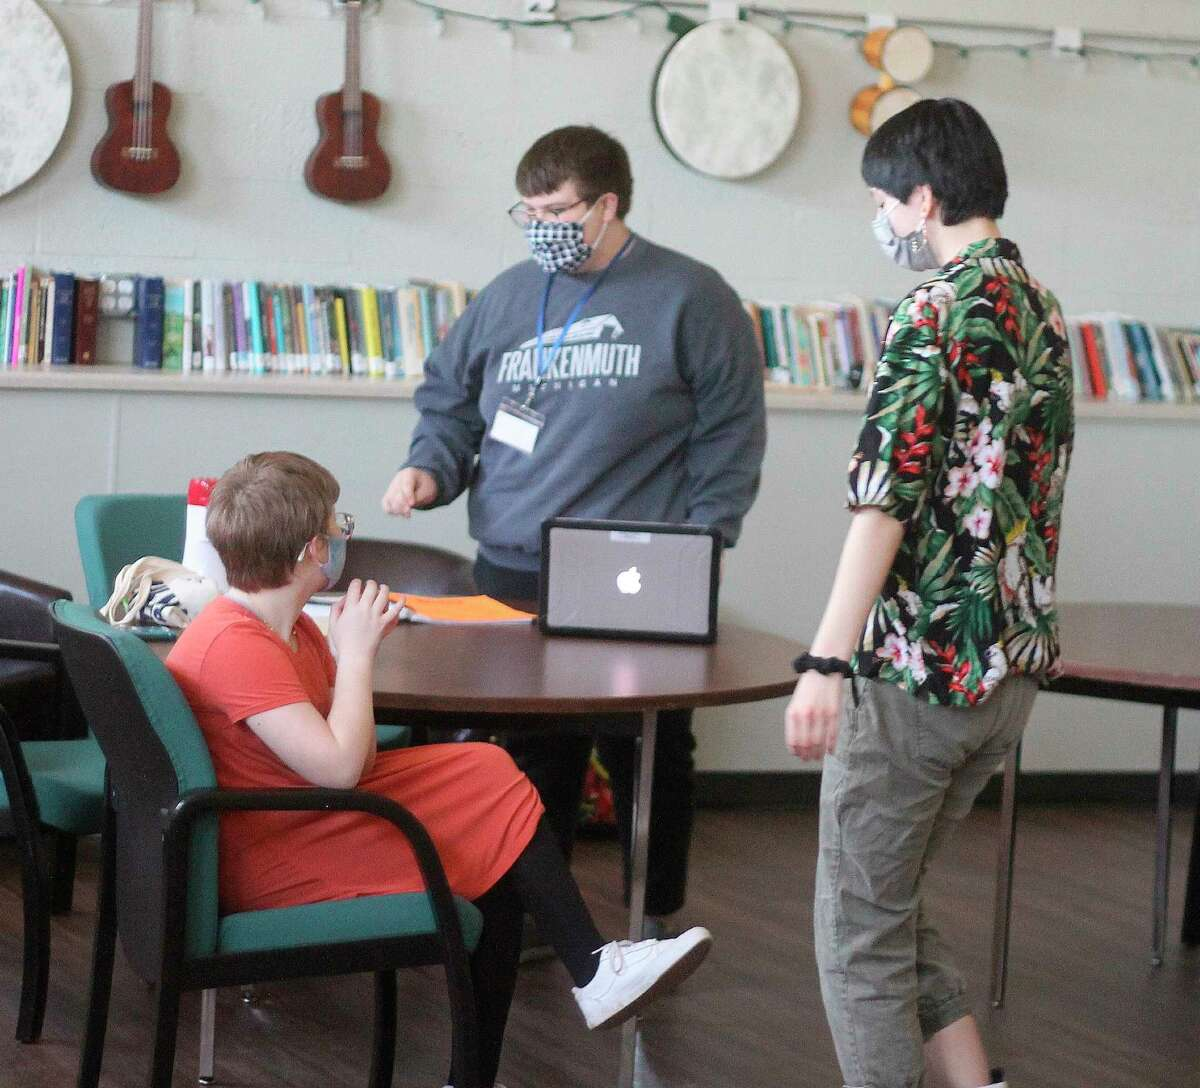 Kaleb Shoemate (center) helps everyone prepare for the virtual talent show at the Armory Youth Project on Friday. (Kyle Kotecki/News Advocate)